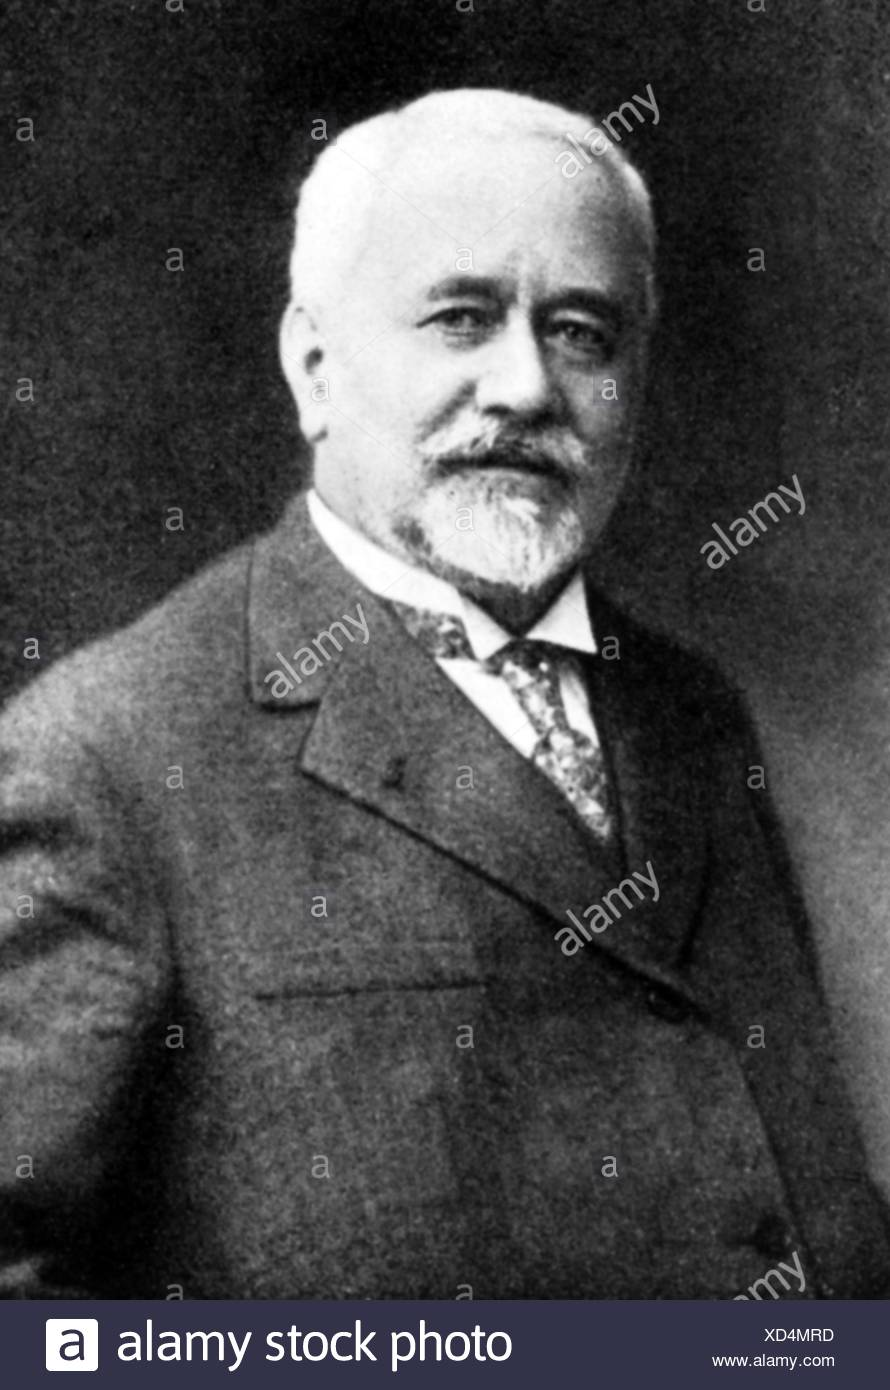 Calmette, Albert,12.7.1863 - 29.10.1933, French physician, bacteriologist, developed a vaccine against tuberculosis together with Camille Guerin, half length, Additional-Rights-Clearances-NA - Stock Image